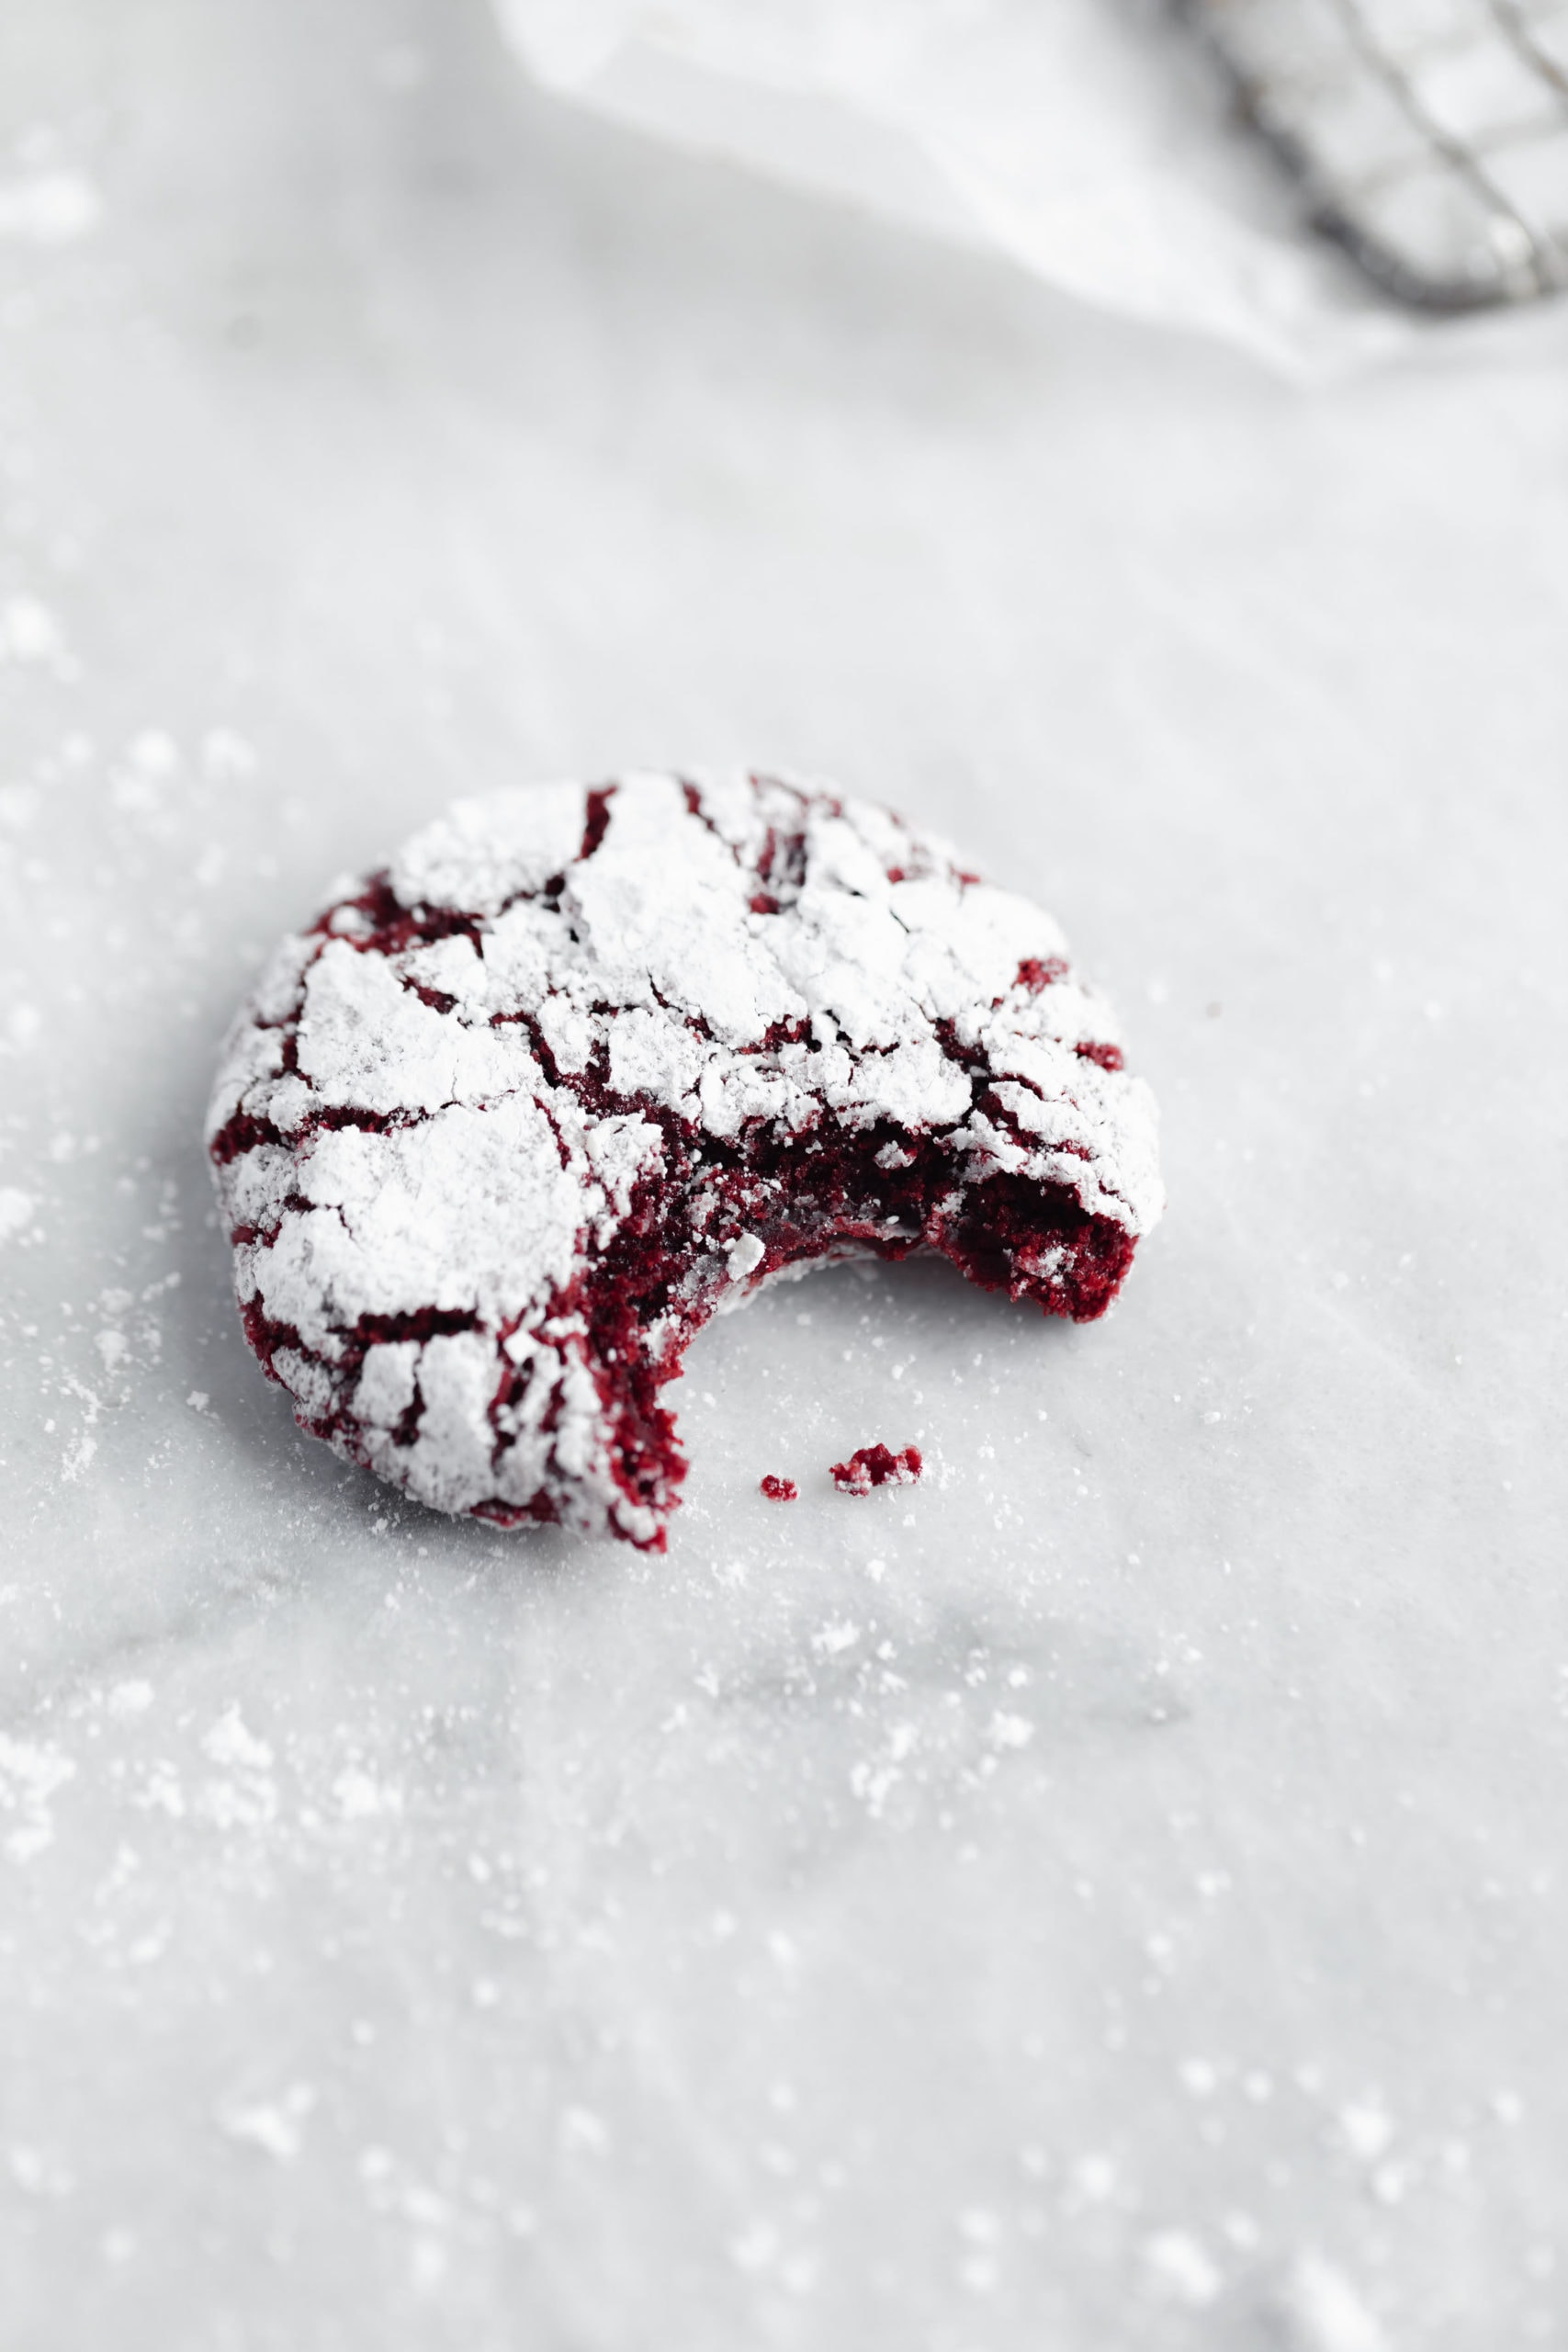 Too goo to resist! Fudgy homemade red velvet Christmas cookie with a bite taken out!